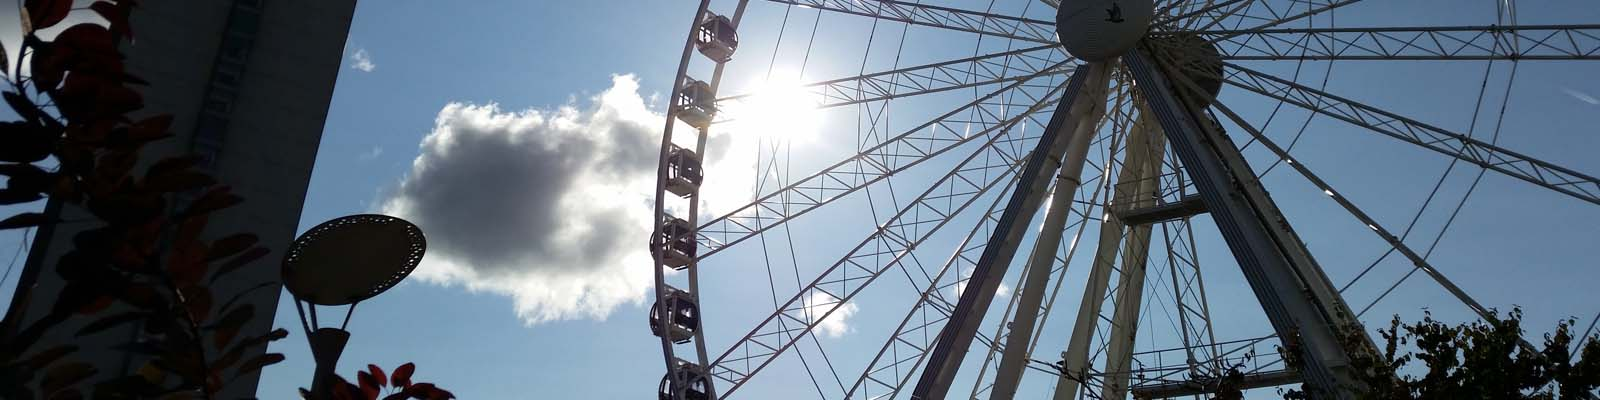 This is an image of a large ferris wheel in Manchester. ASTA-USA provides professional translation services in this city.